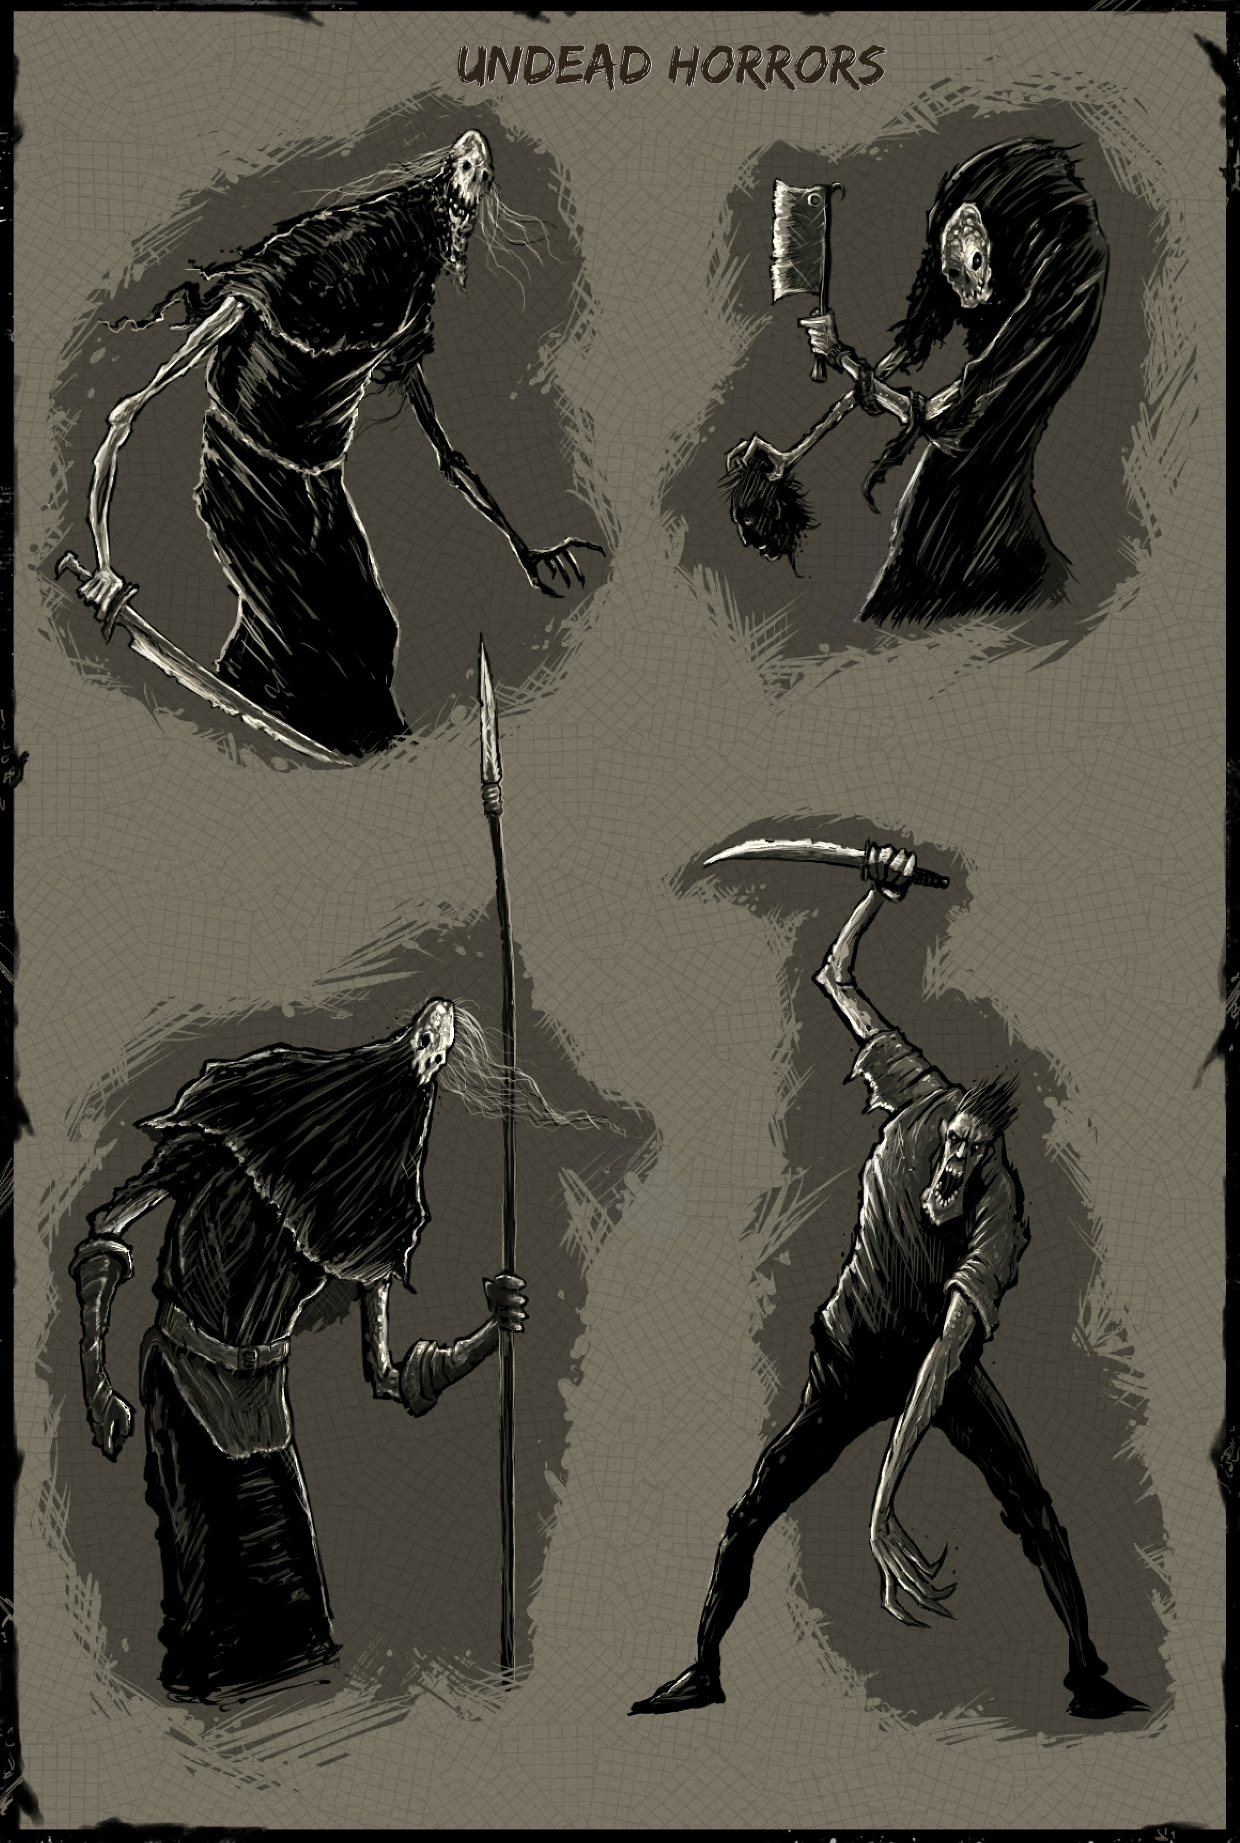 Concept sketches Undead